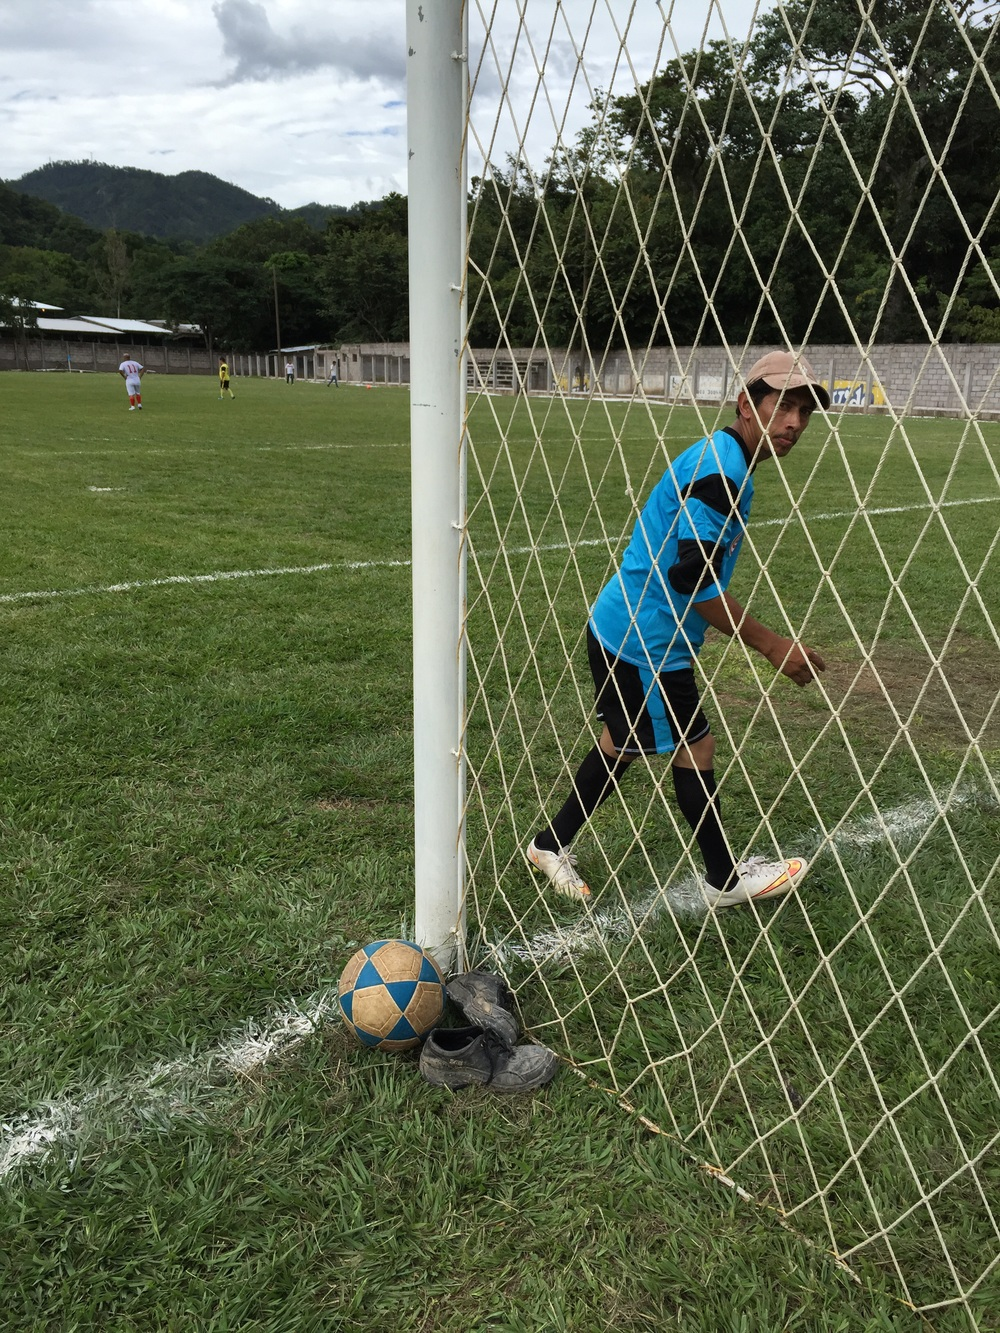 Over-forty fútbol in Copán Ruinas, Honduras. This shorter catracho got worked over for at least three goals in the first half, just can't reach the top of the goalpost.